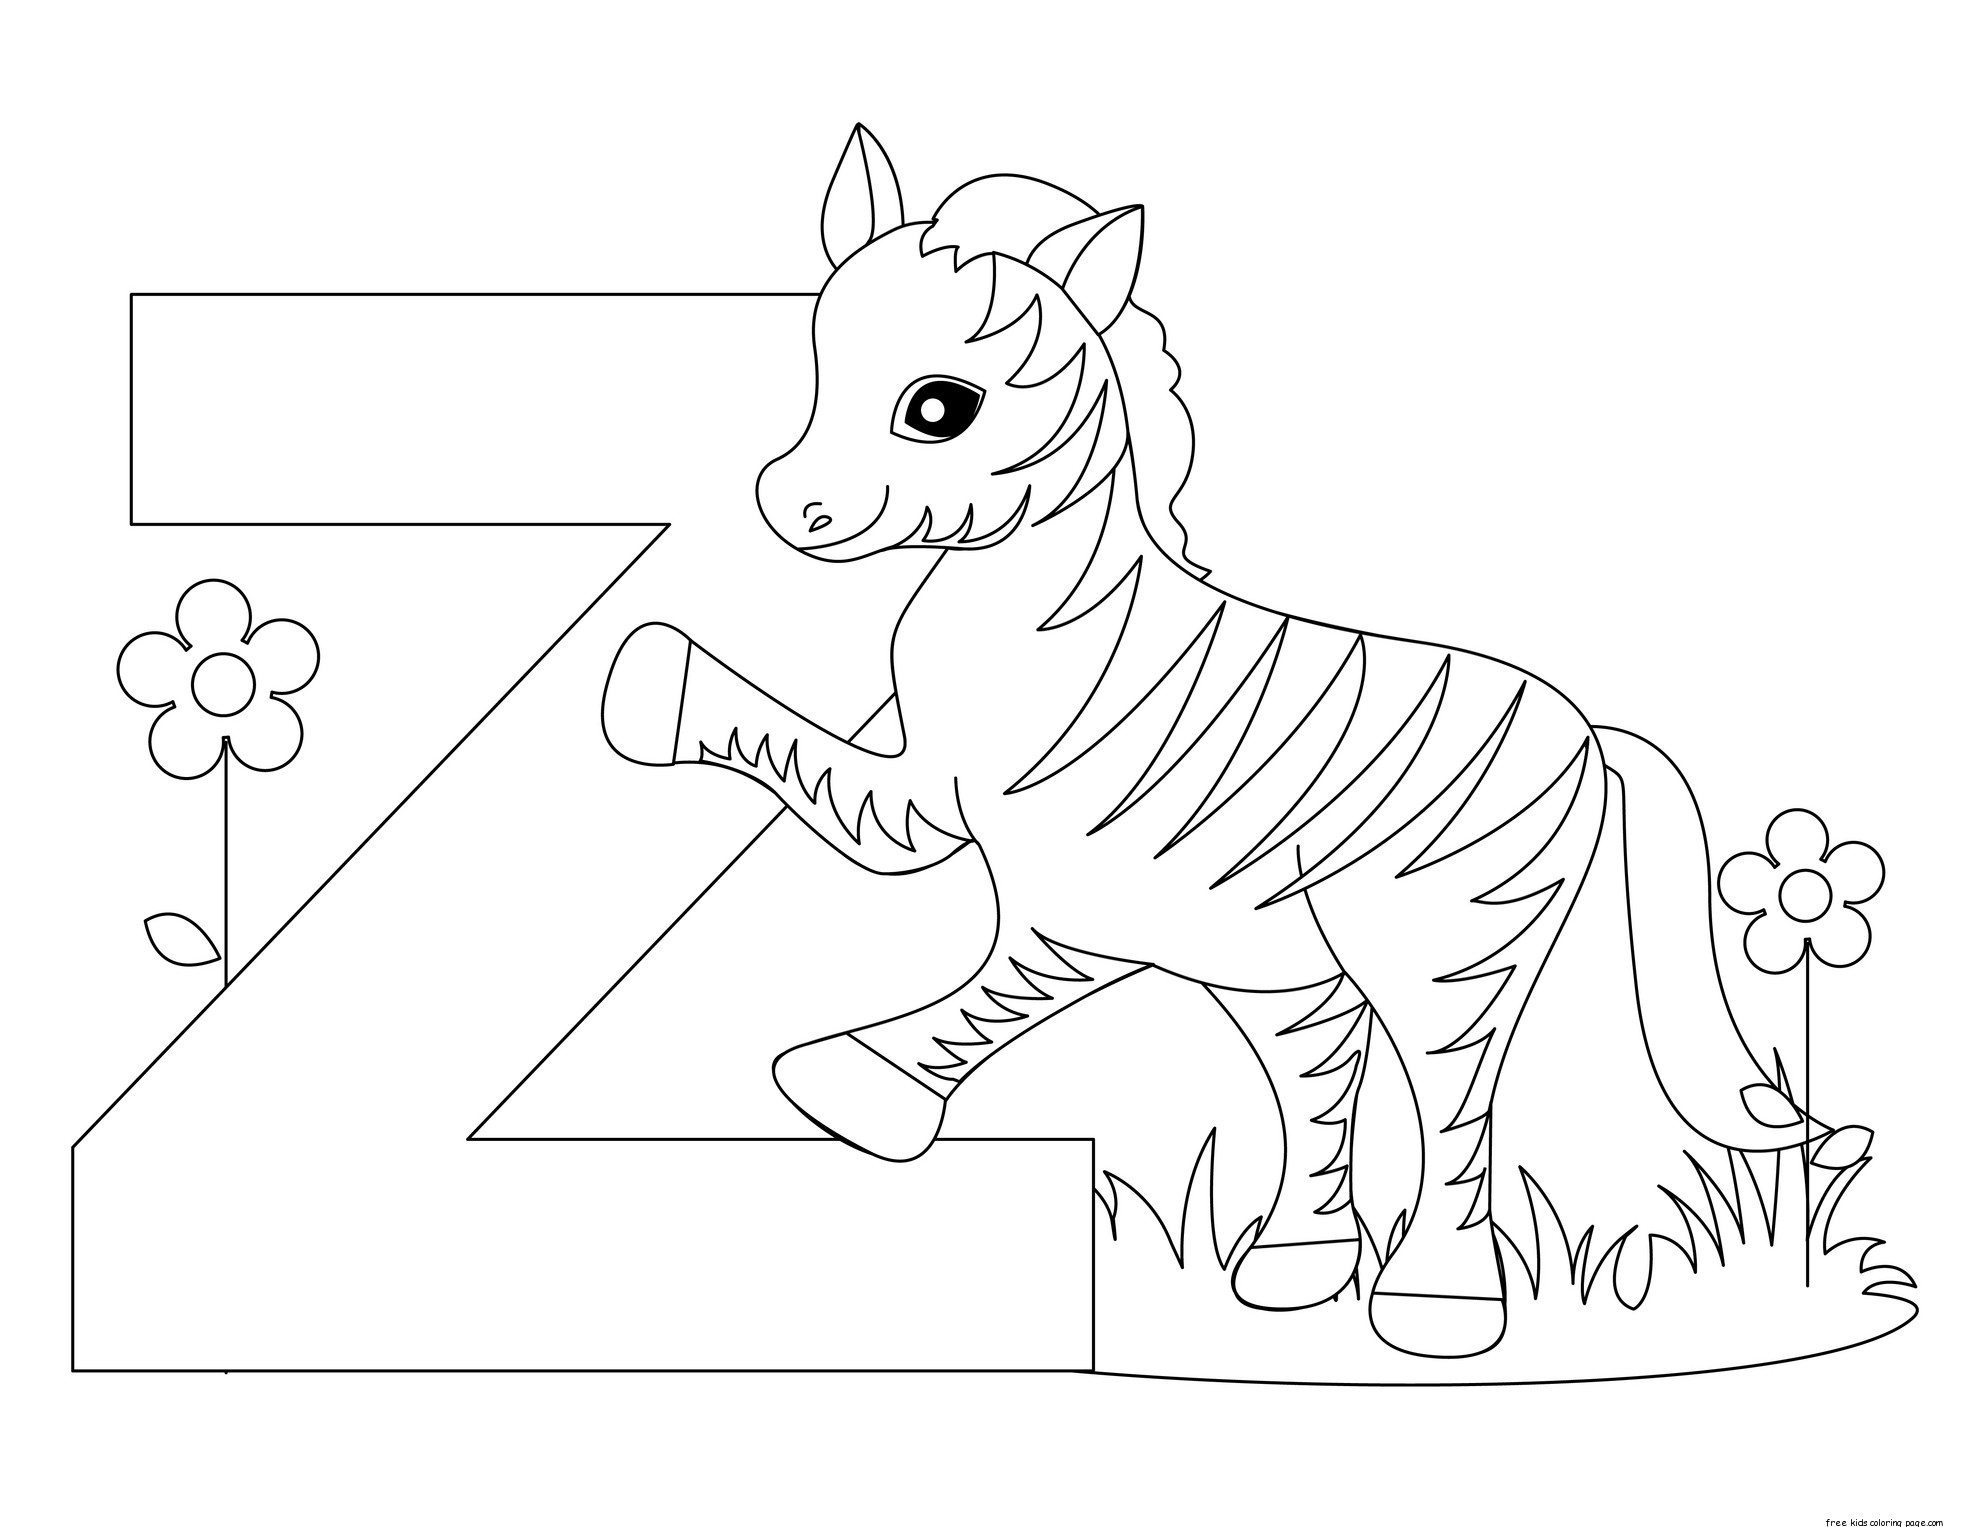 z word coloring pages - photo#21